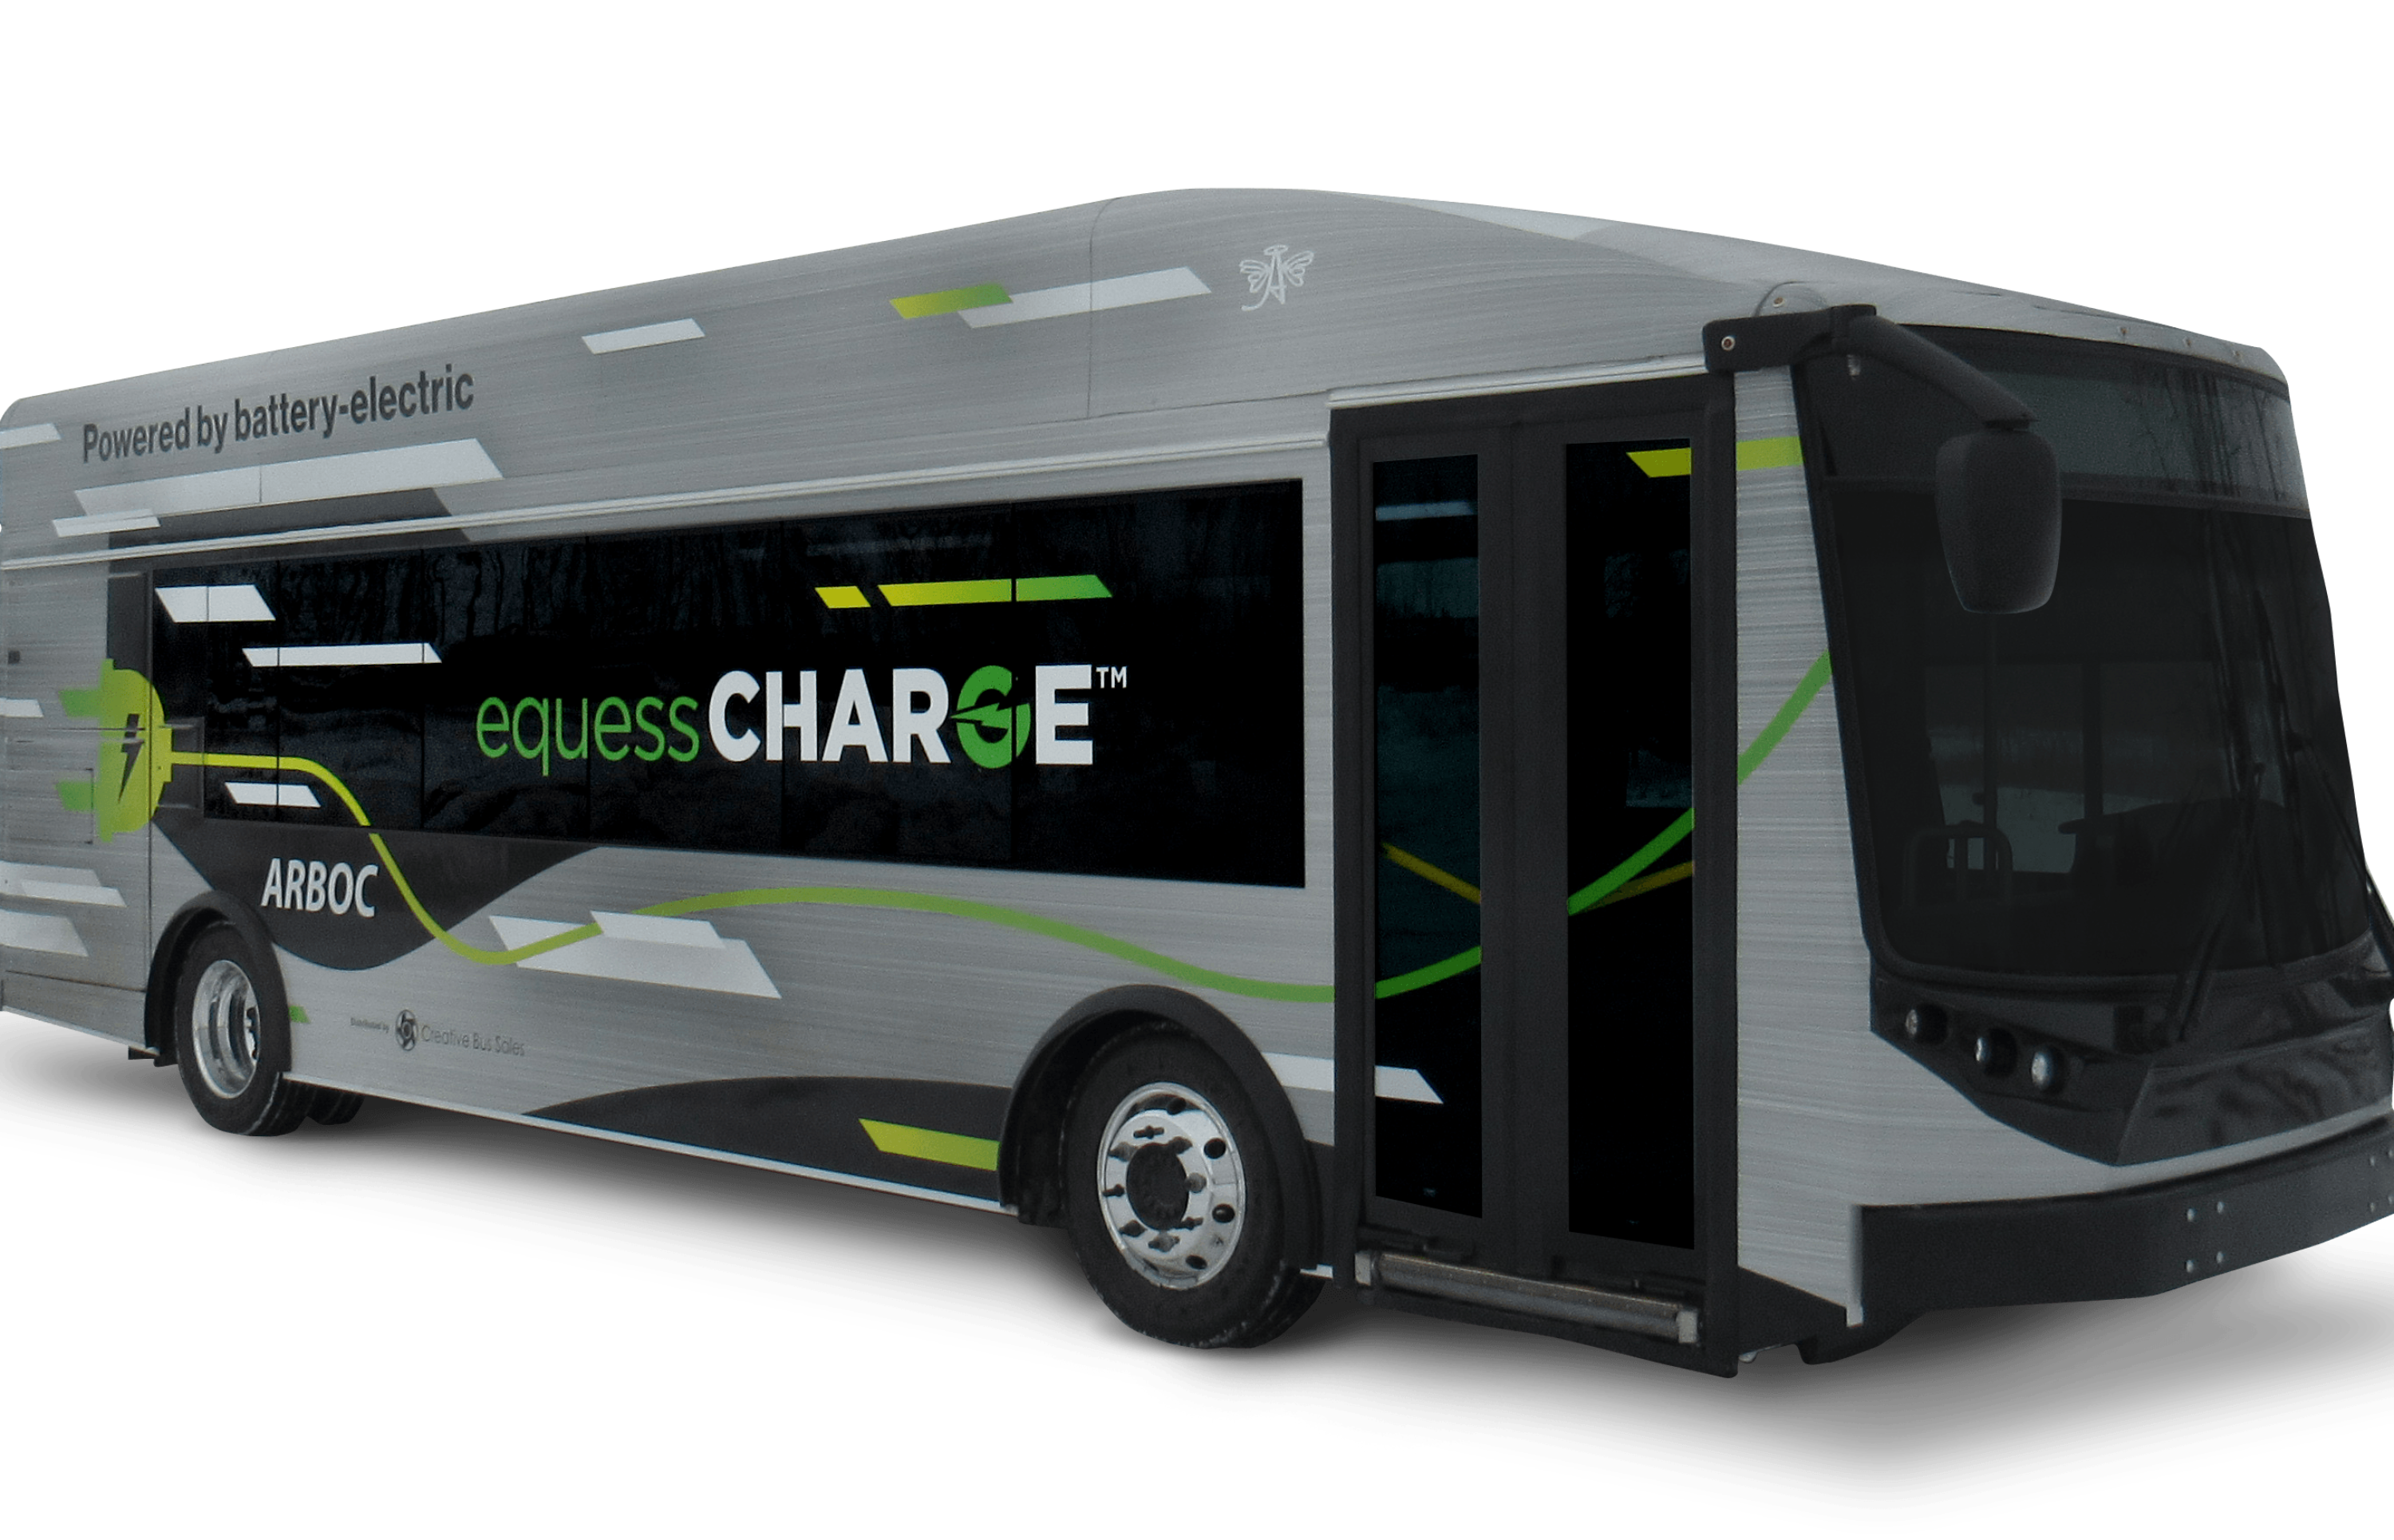 ARBOC Launches Equess CHARGE™